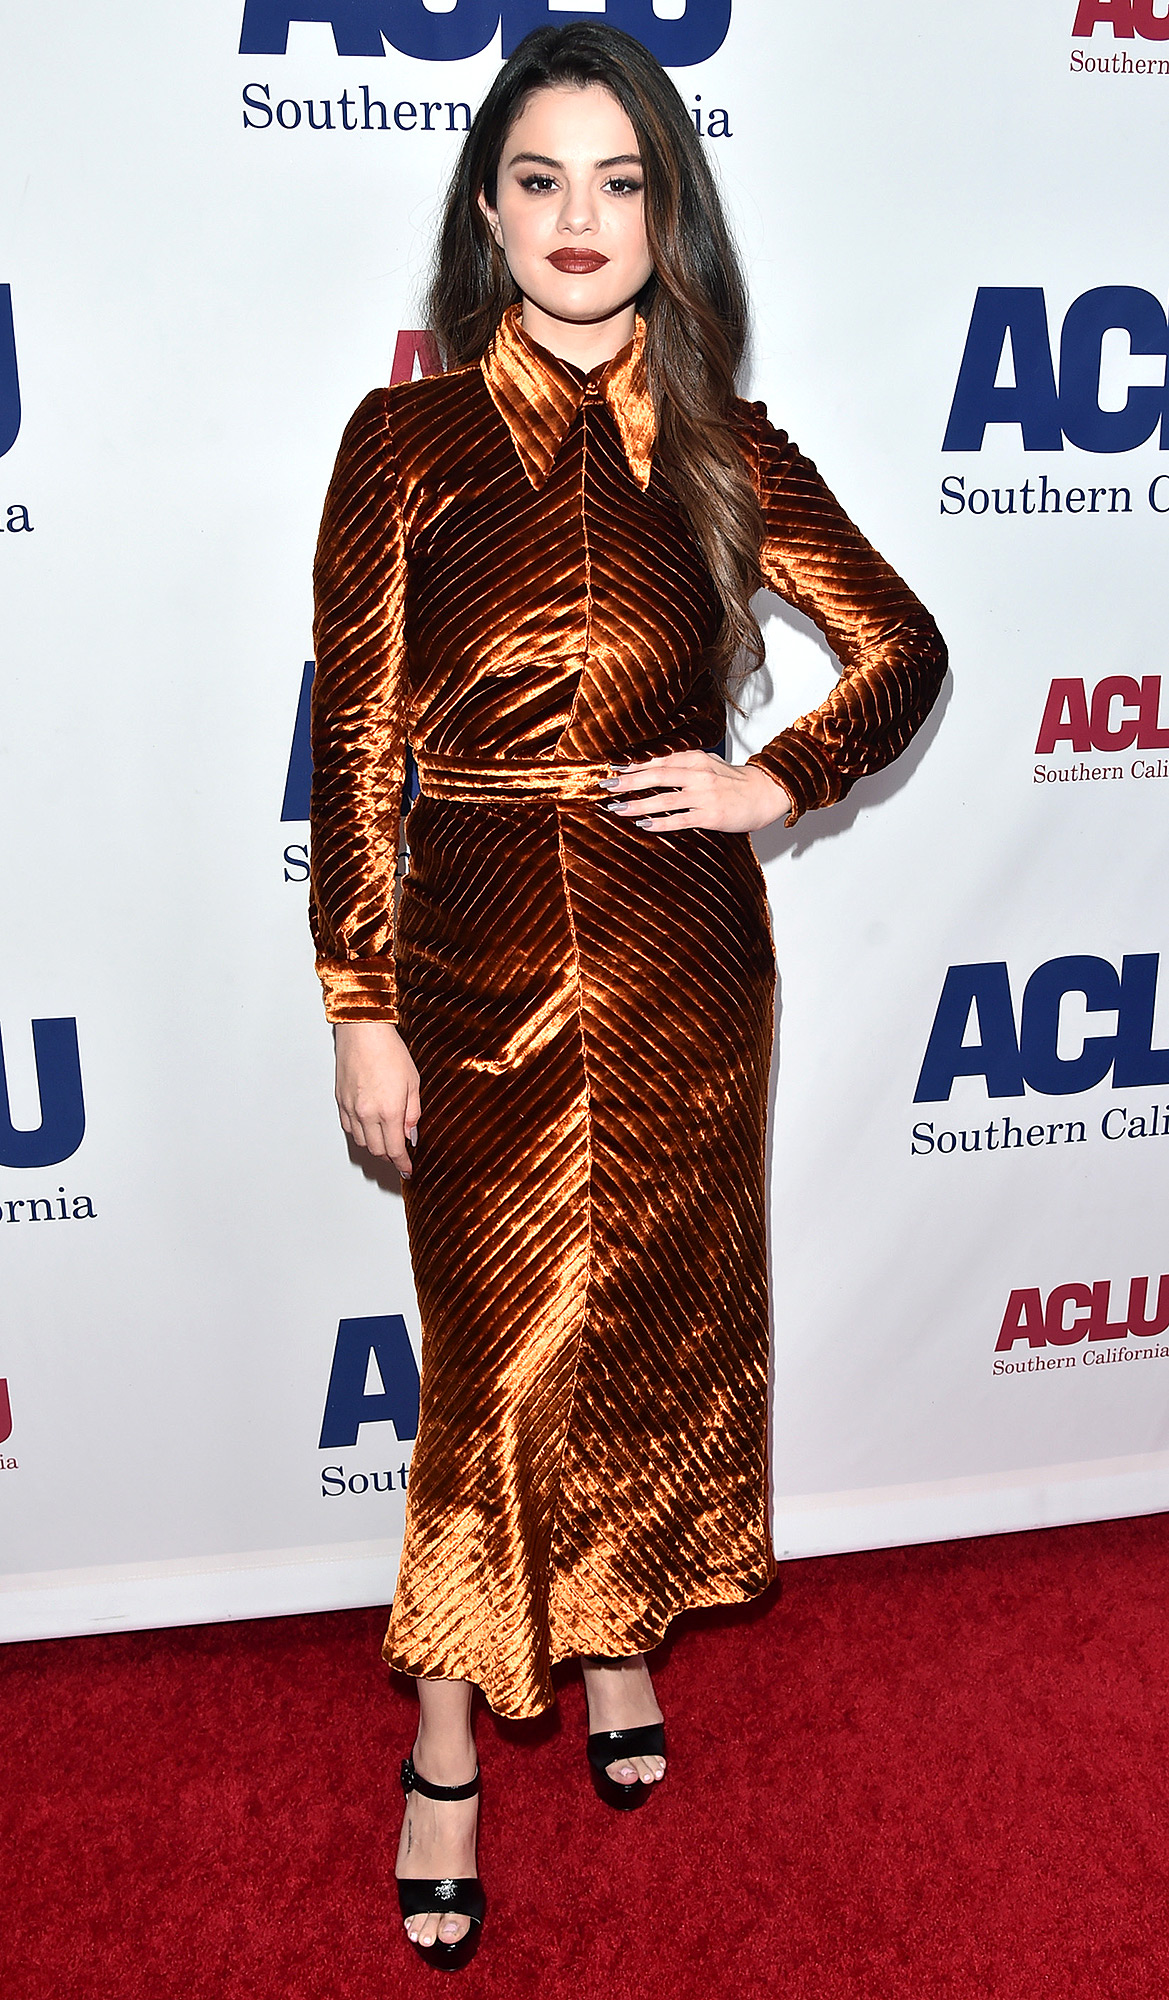 Selena Gomez attends ACLU SoCal's Annual Bill of Rights dinner